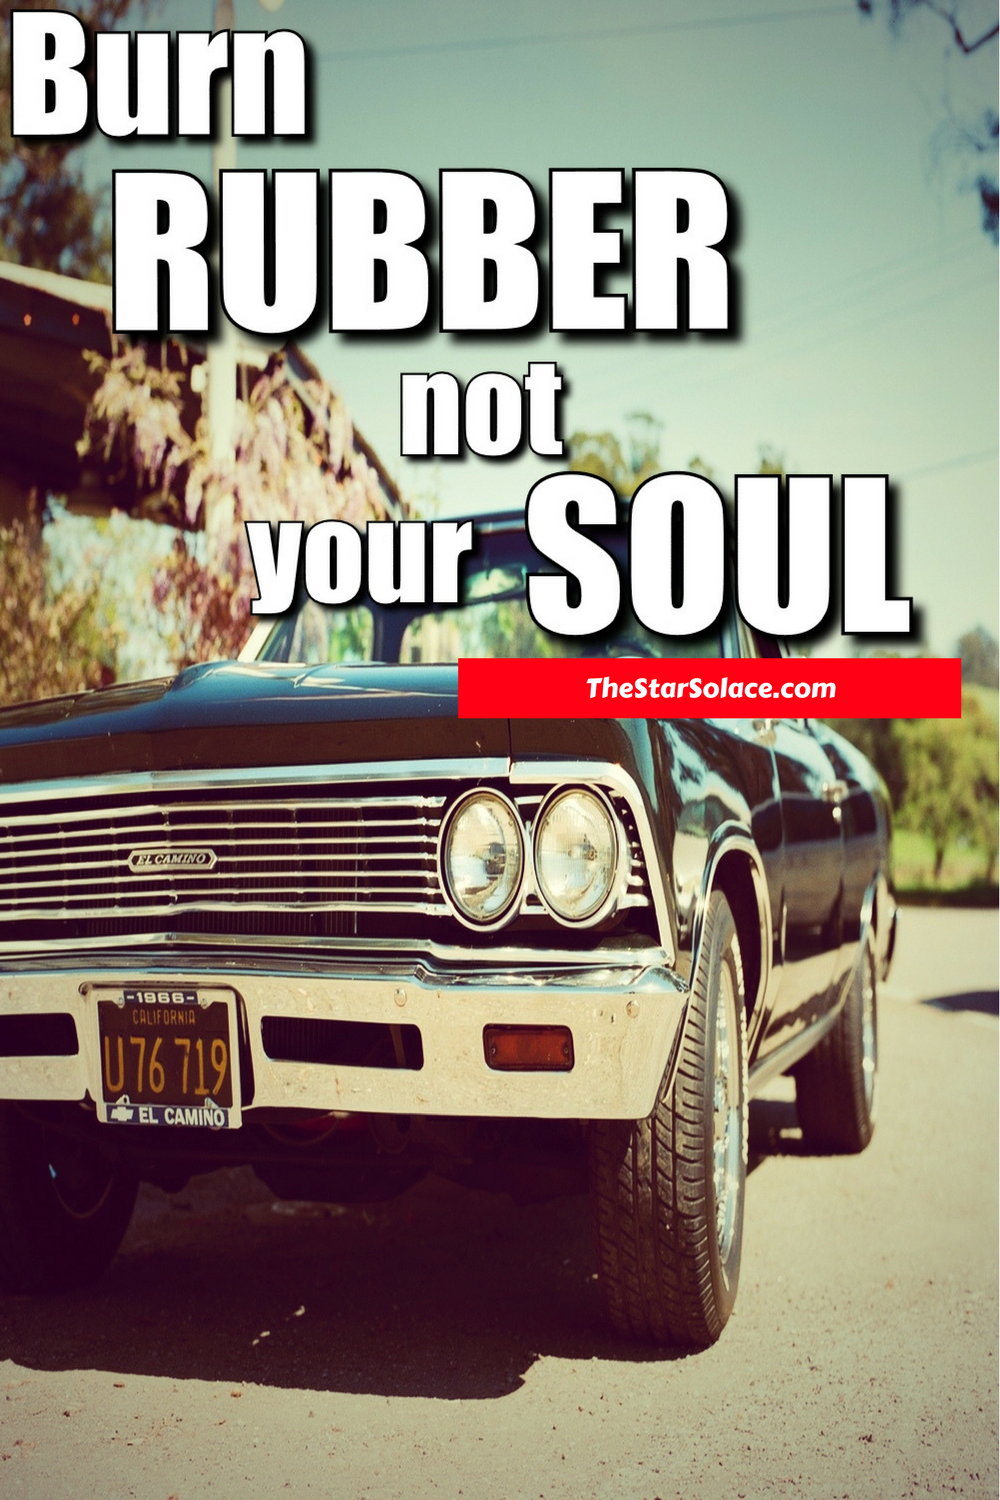 Burn Rubber Motivation Inspiration Words Quotes Life Cars